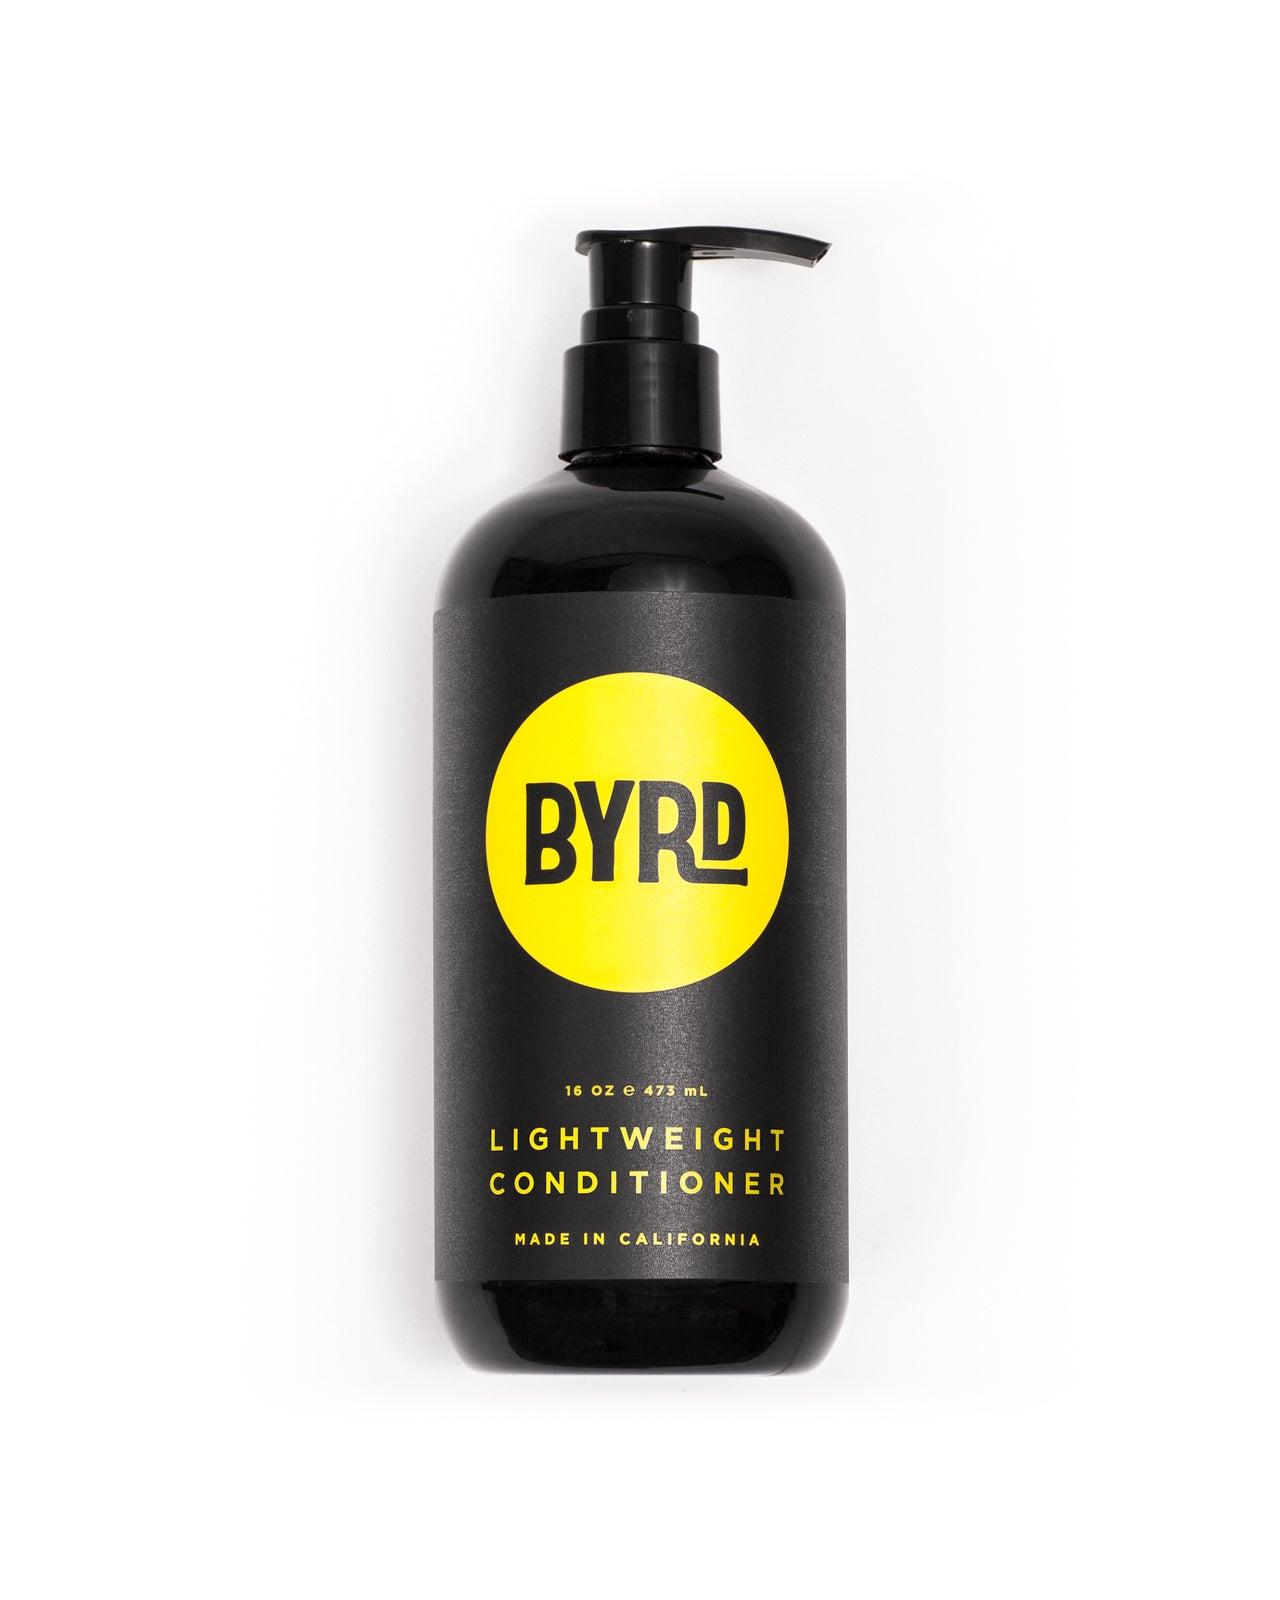 Lightweight Conditioner - Color: Black | Black